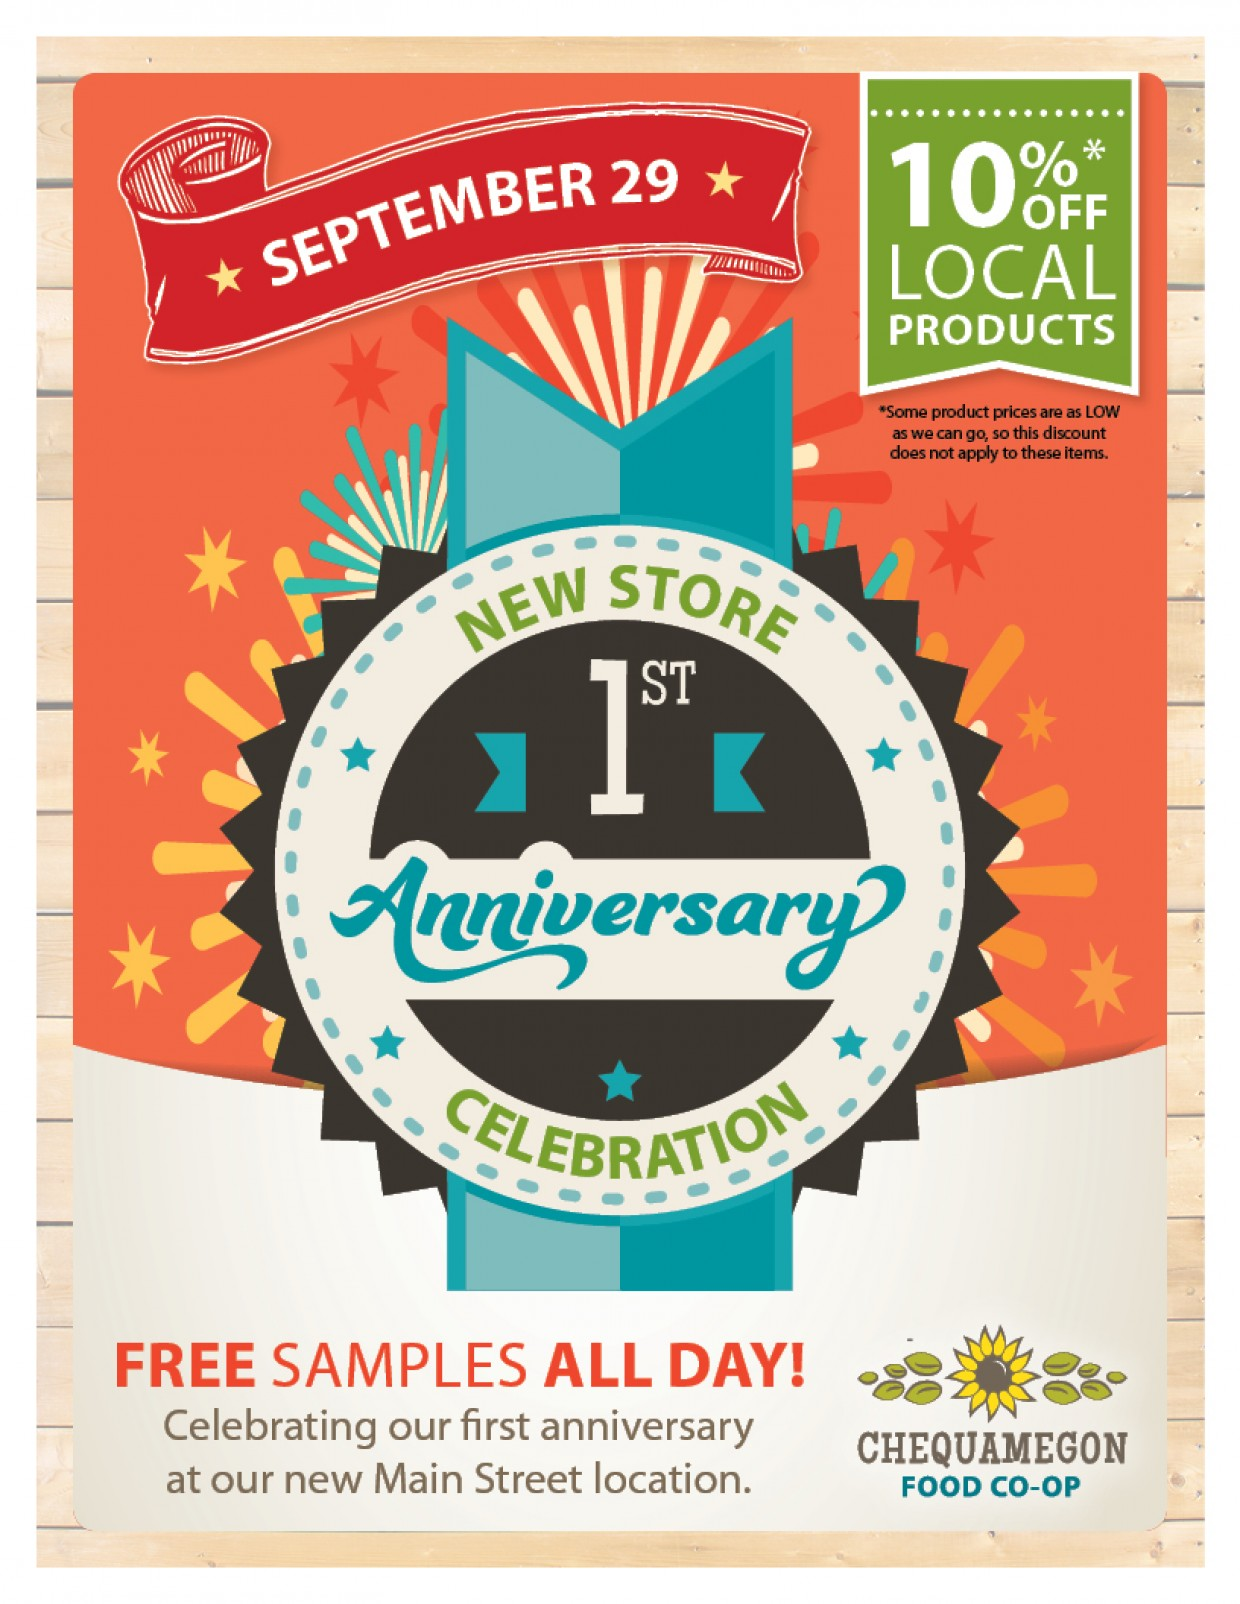 Anniversary sale off local products chequamegon